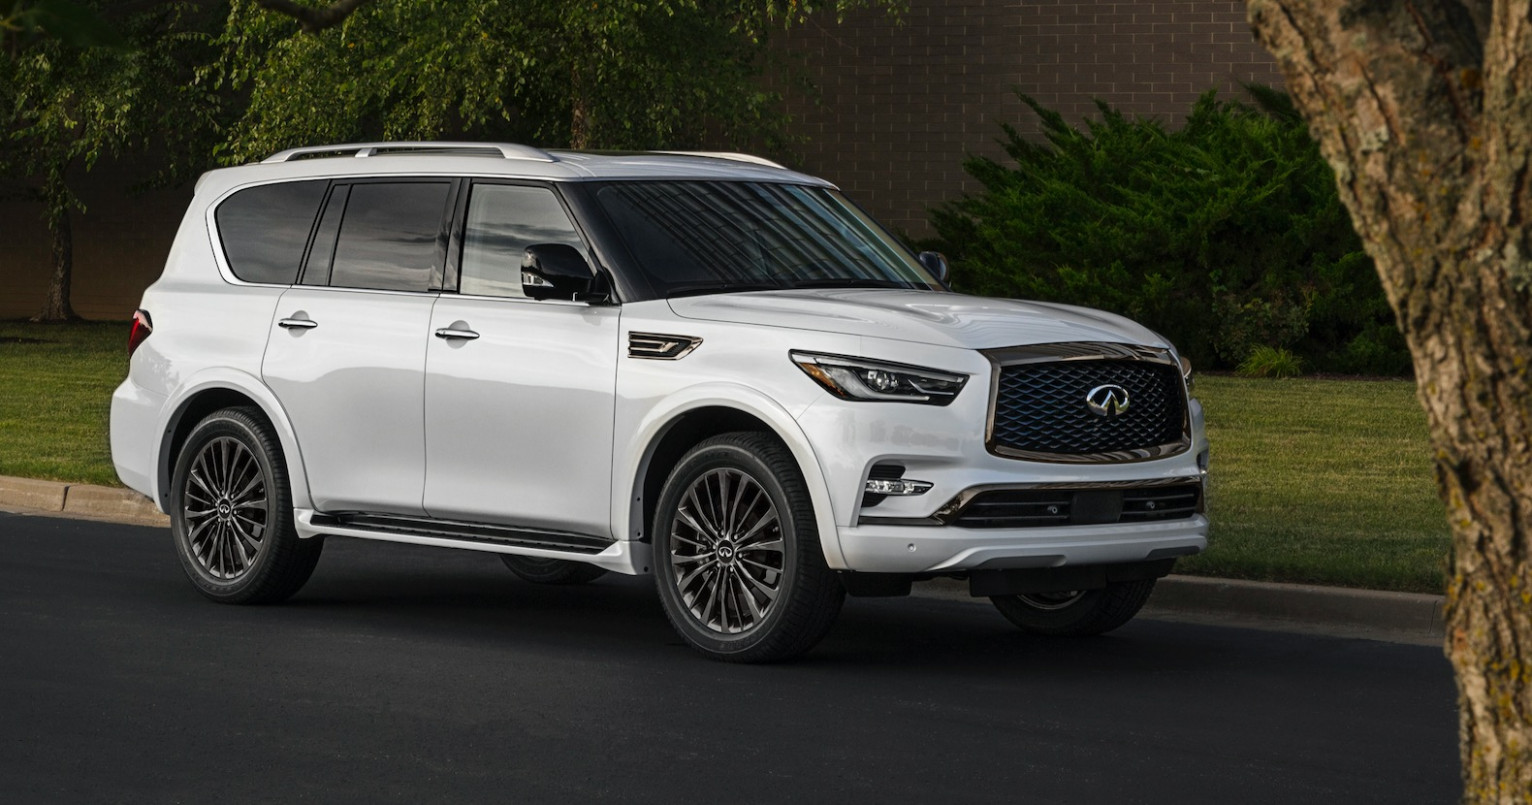 Interior When Does The 2022 Infiniti Qx80 Come Out